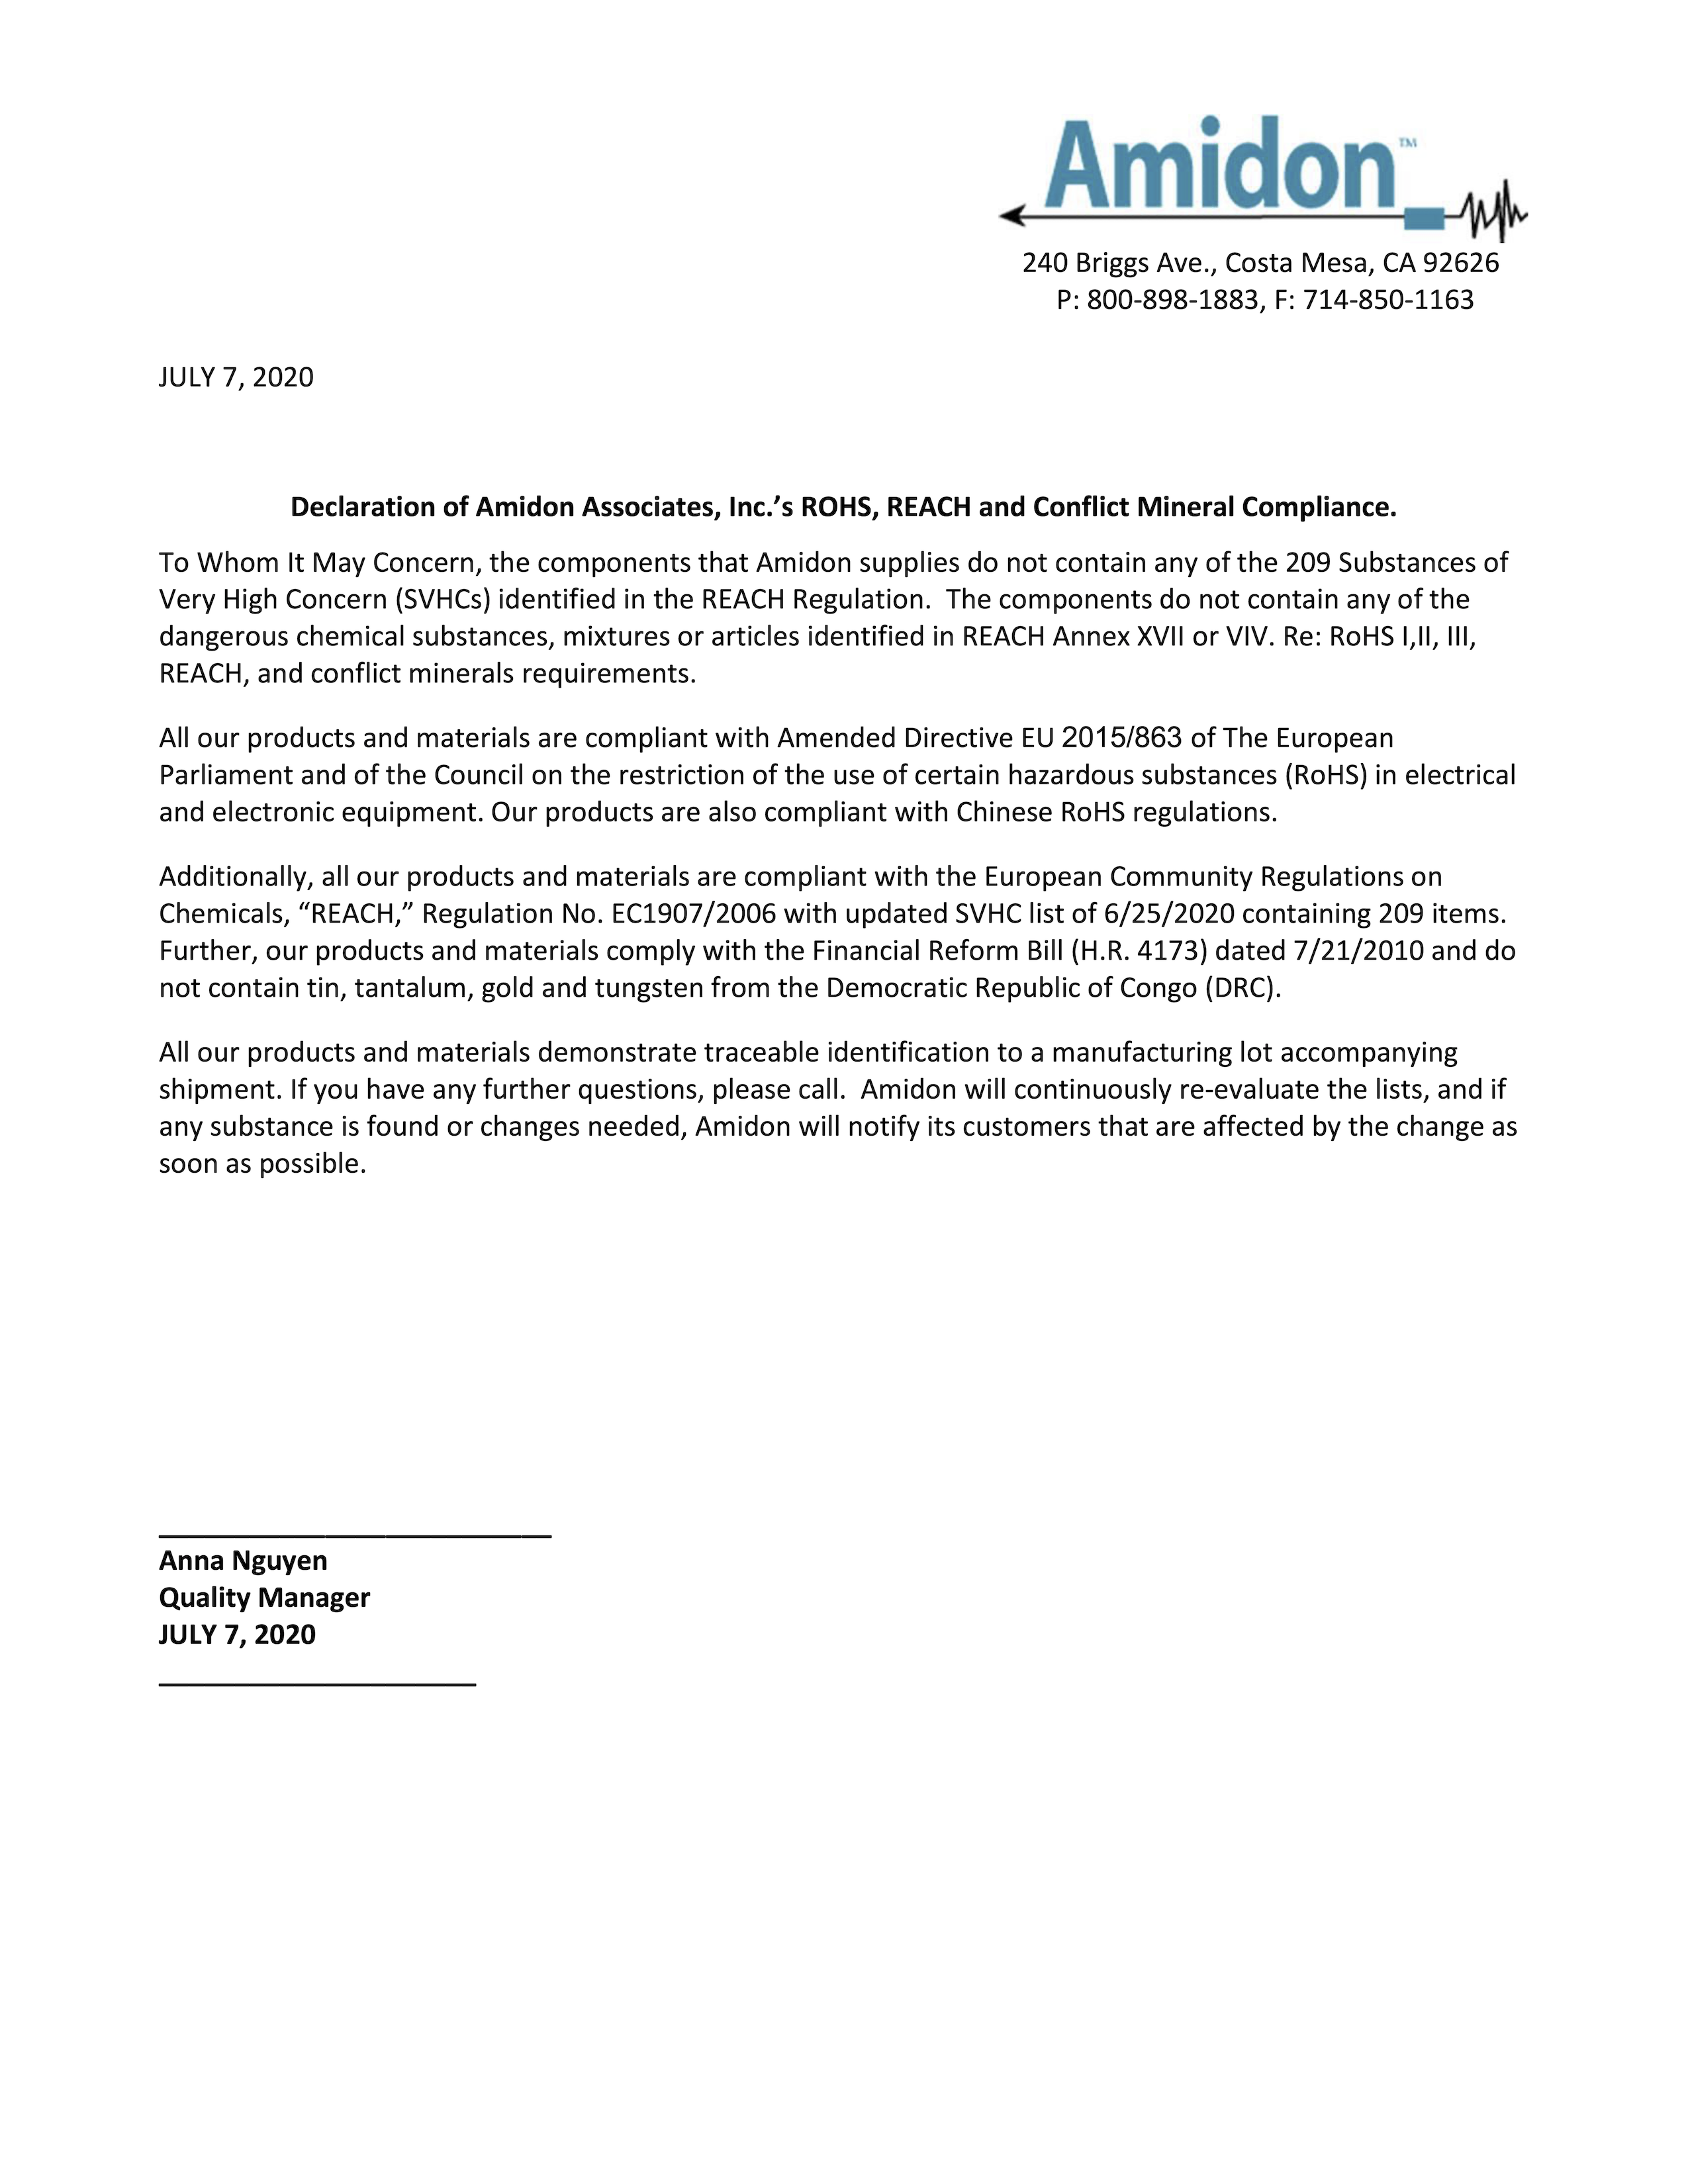 amidon-reach-rohs-and-conflict-mineral-statement-2017-07-07.png